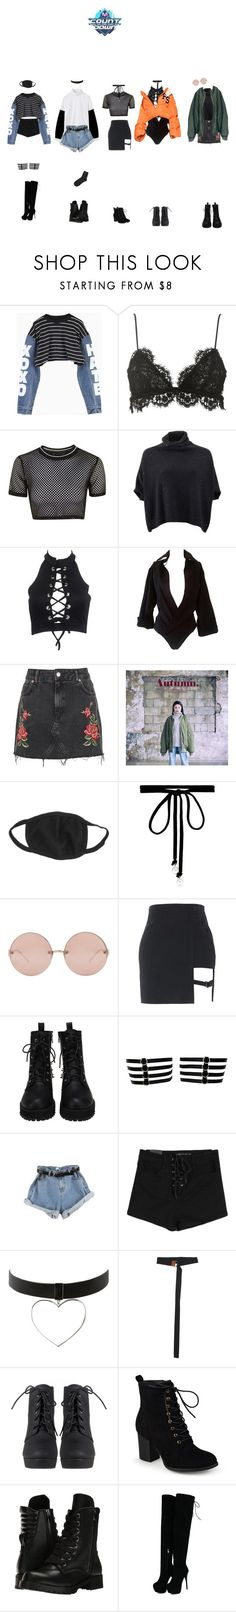 """""""elc - Preforming 'loser' [M COUNTDOWN}"""" by officialelc ❤ liked on Polyvore featuring Isabel Marant, Dries Van Noten, Topshop, Brunello Cucinelli, Dsquared2, Joomi Lim, Linda Farrow, TIBI, Journee Collection and Capezio"""